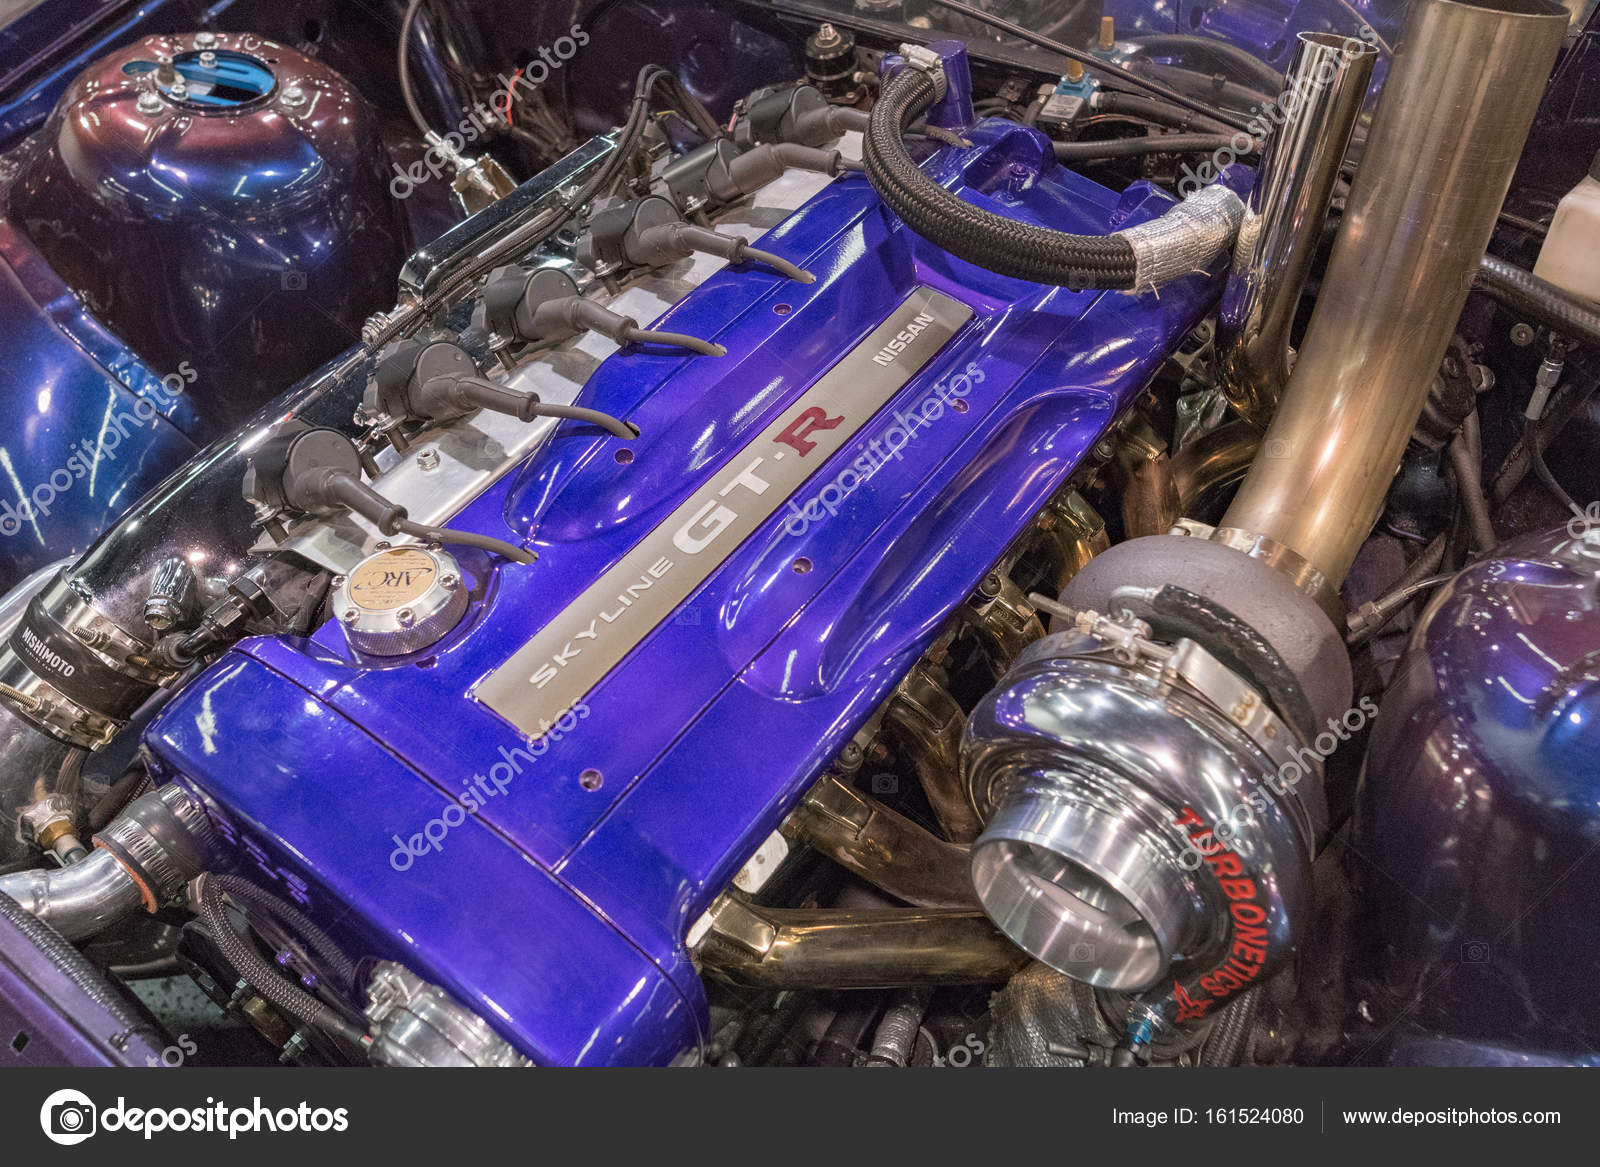 Nissan Skyline Gt R Engine On Display Stock Editorial Photo Spec Anaheim Usa July 22 2017 During Spocom Super Show By Bettorodrigues